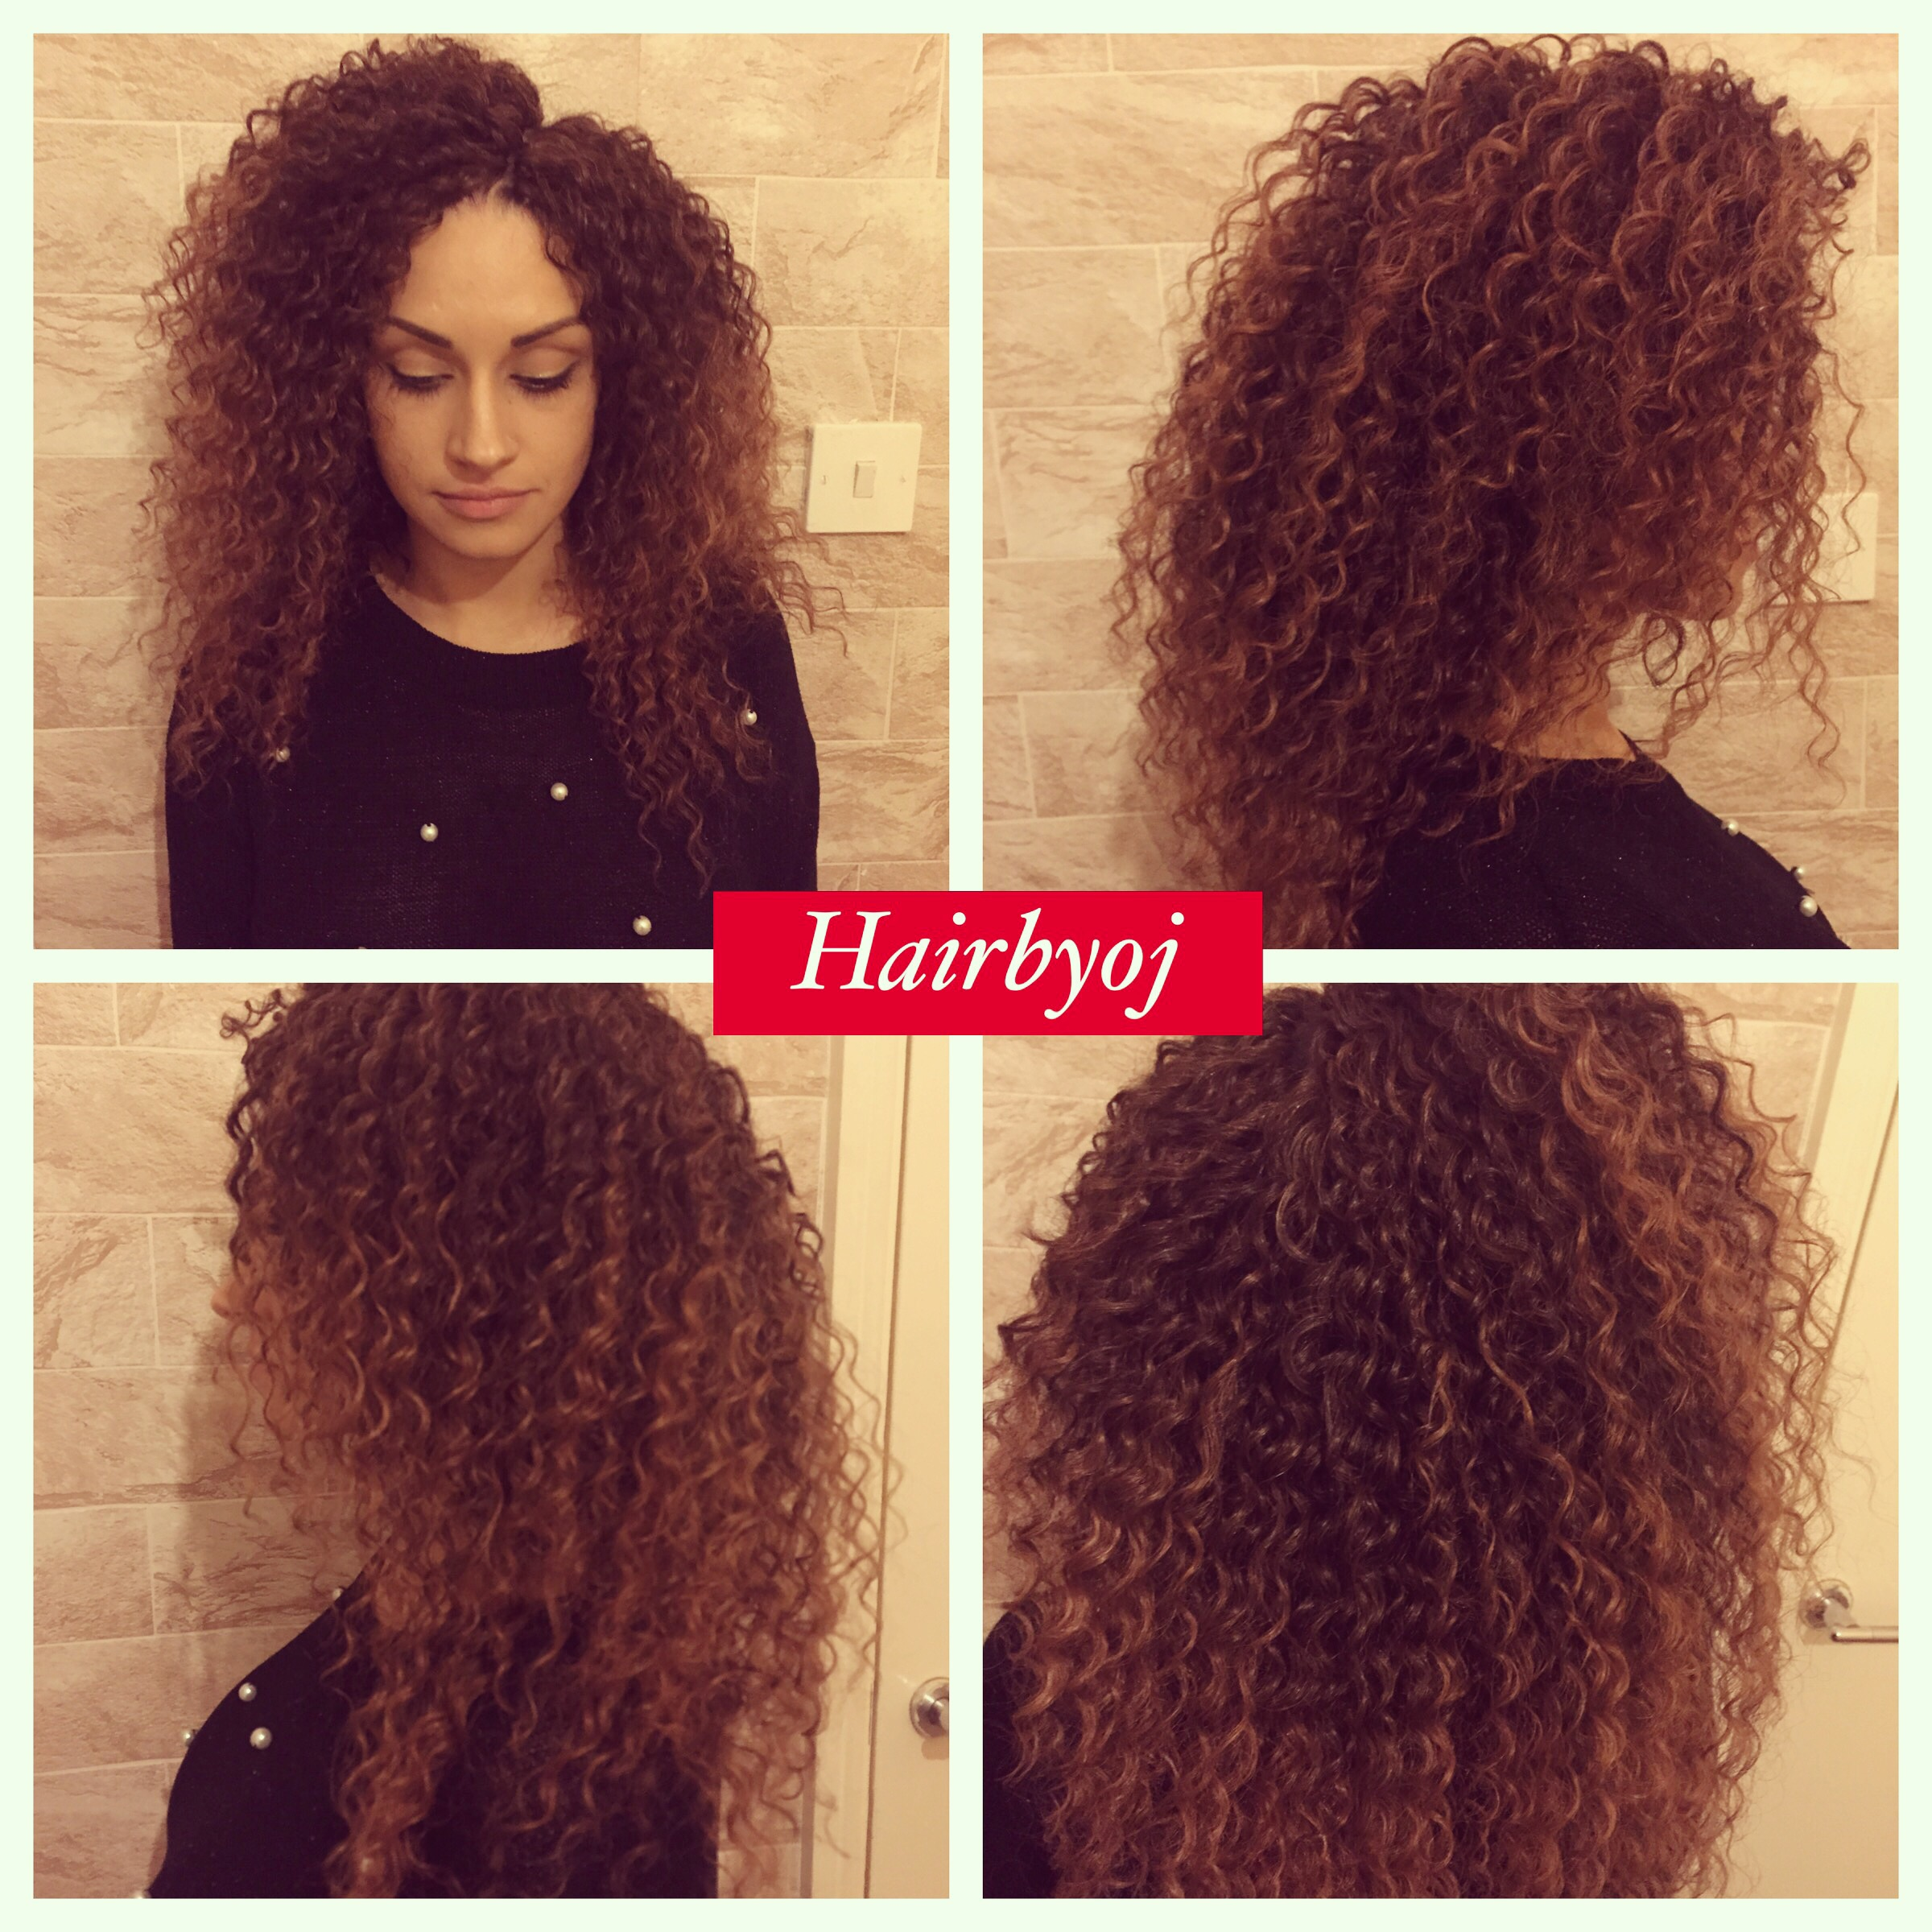 Crochet Hair Leave Out : Crochet Braids With Leave Out galleryhip.com - The Hippest Galleries ...